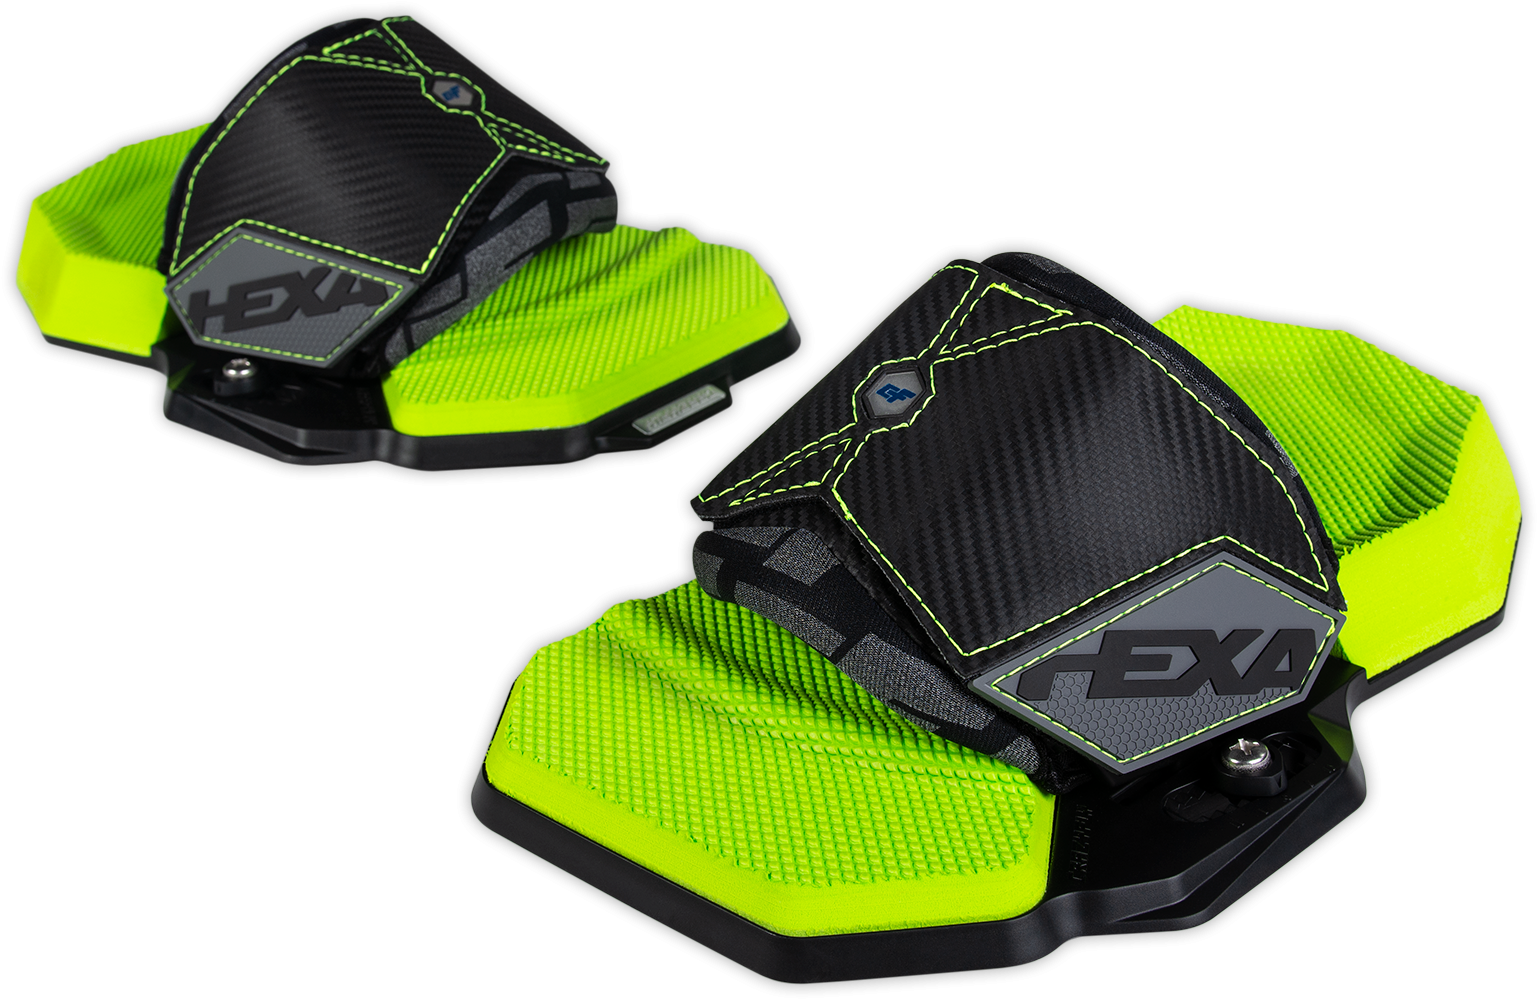 Hexa Ltd Neon bindings